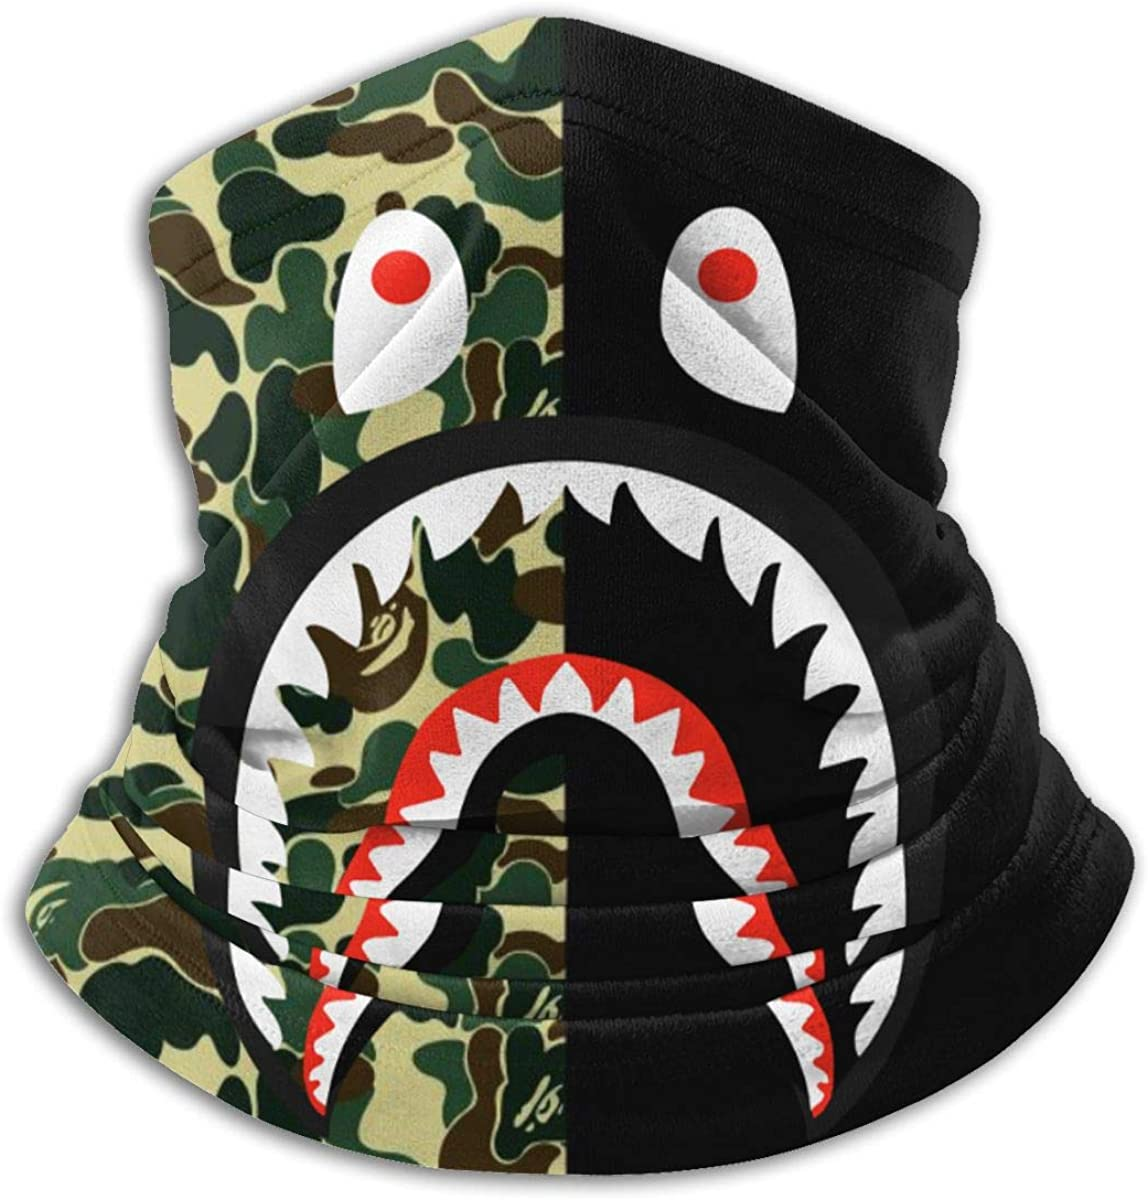 Bape Camo Blood Shark Microfiber Neck Warmer,Sports Face Guards,Windproof Dust Proof Mouth Face Mask Magic Scarf Balaclava